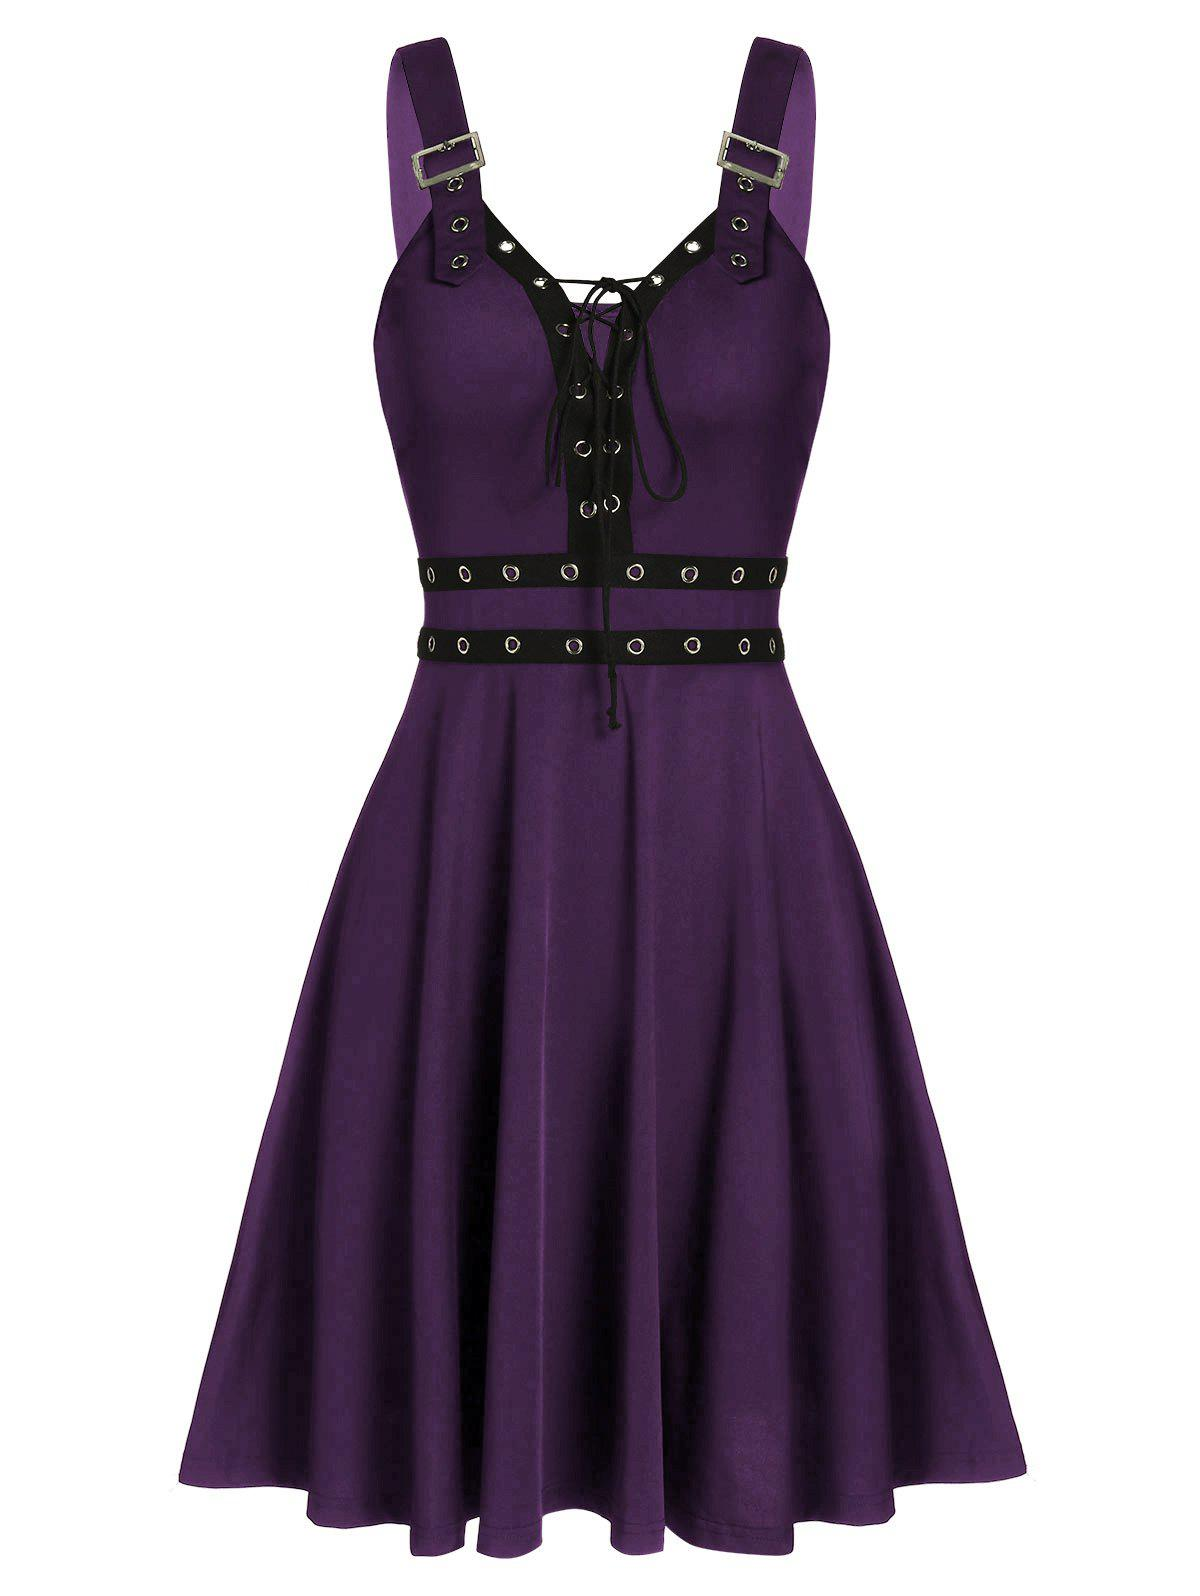 Sale Sweetheart Collar A Line Rings Gothic Dress